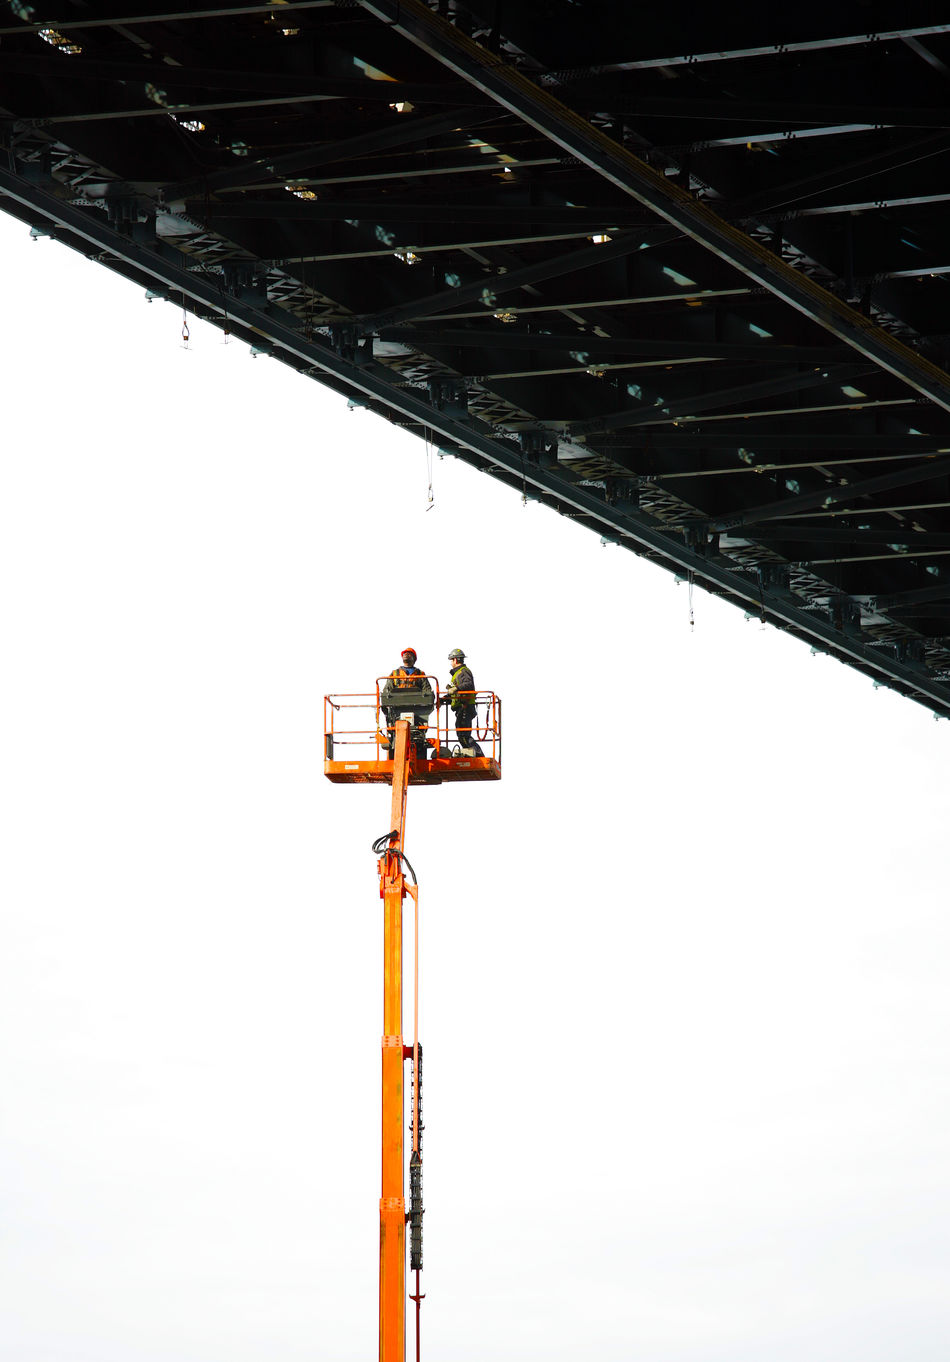 Bridge Bridge Maintainance Construction Crane Crane - Construction Machinery Day Maintenance Manhattan Bridge New York City Outdoors Suspended In Air Thrillseeker Work Just Hanging Out Maintenance Work Suspended Finding New Frontiers Adapted To The City Flying High